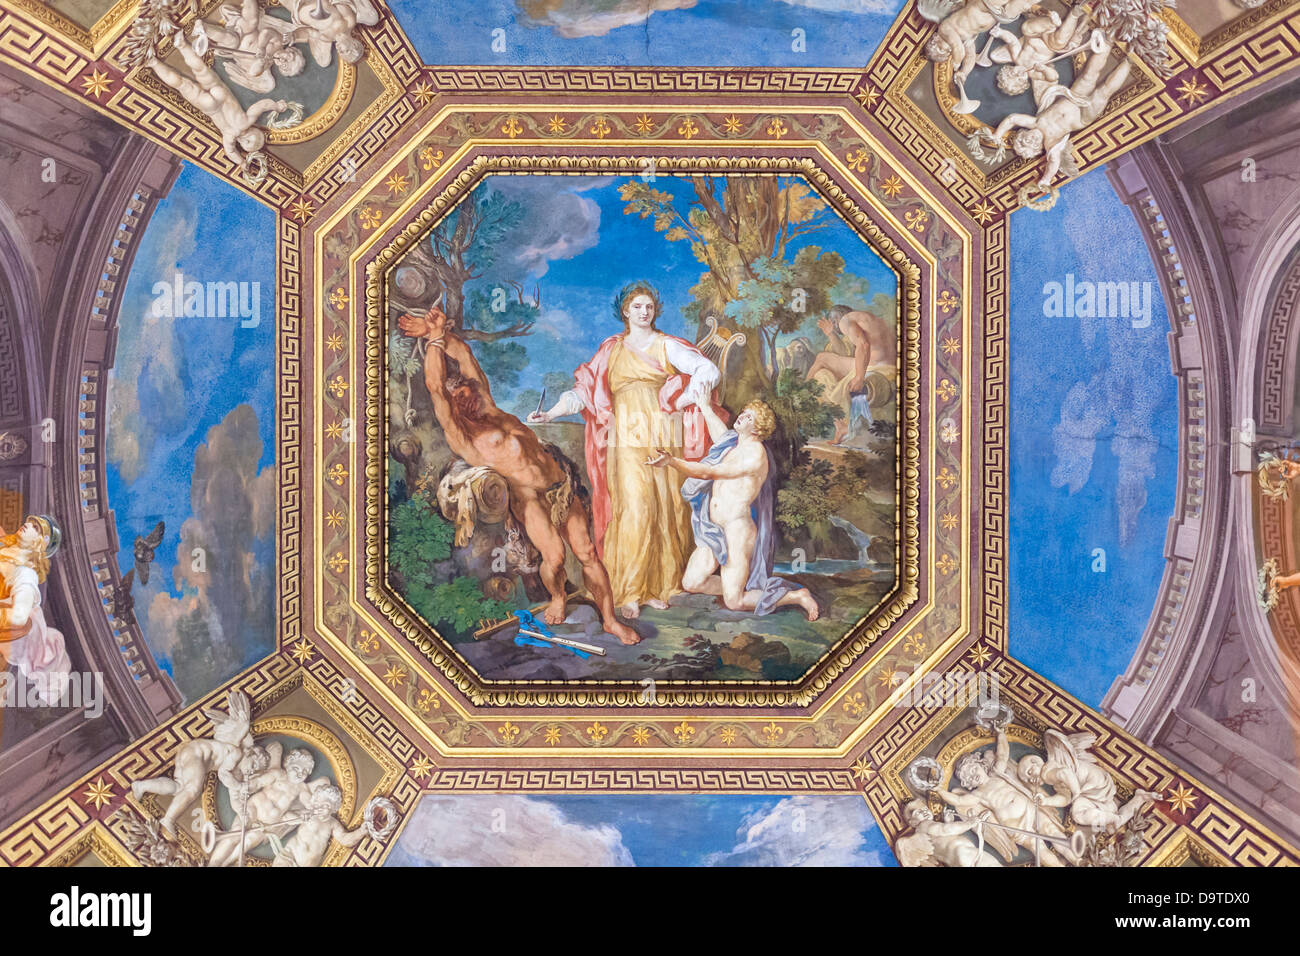 Tommaso Conca, Room of the Muses, fresco - Stock Image